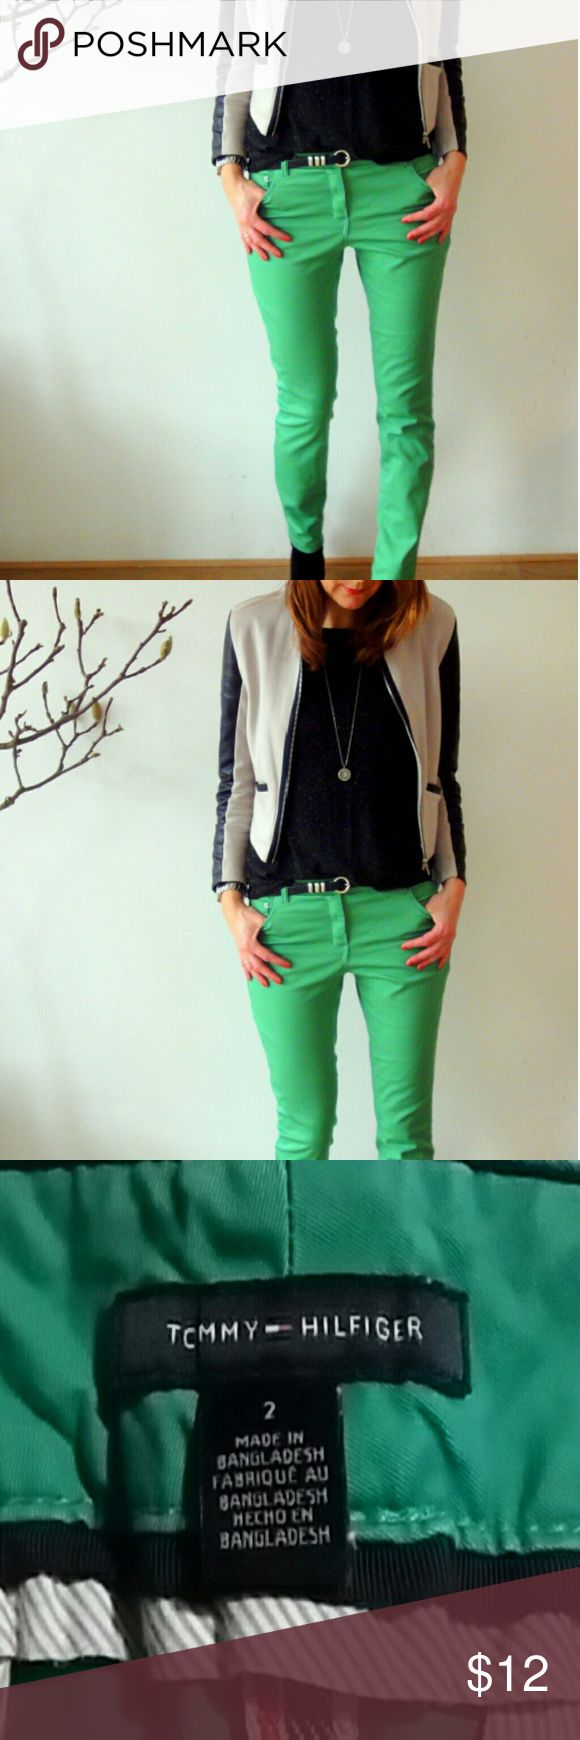 Tommy Hilfiger chino pants Kelly green Tommy Hilfiger chino pants 97% cotton 3%elastane Tommy Hilfiger Pants Trousers